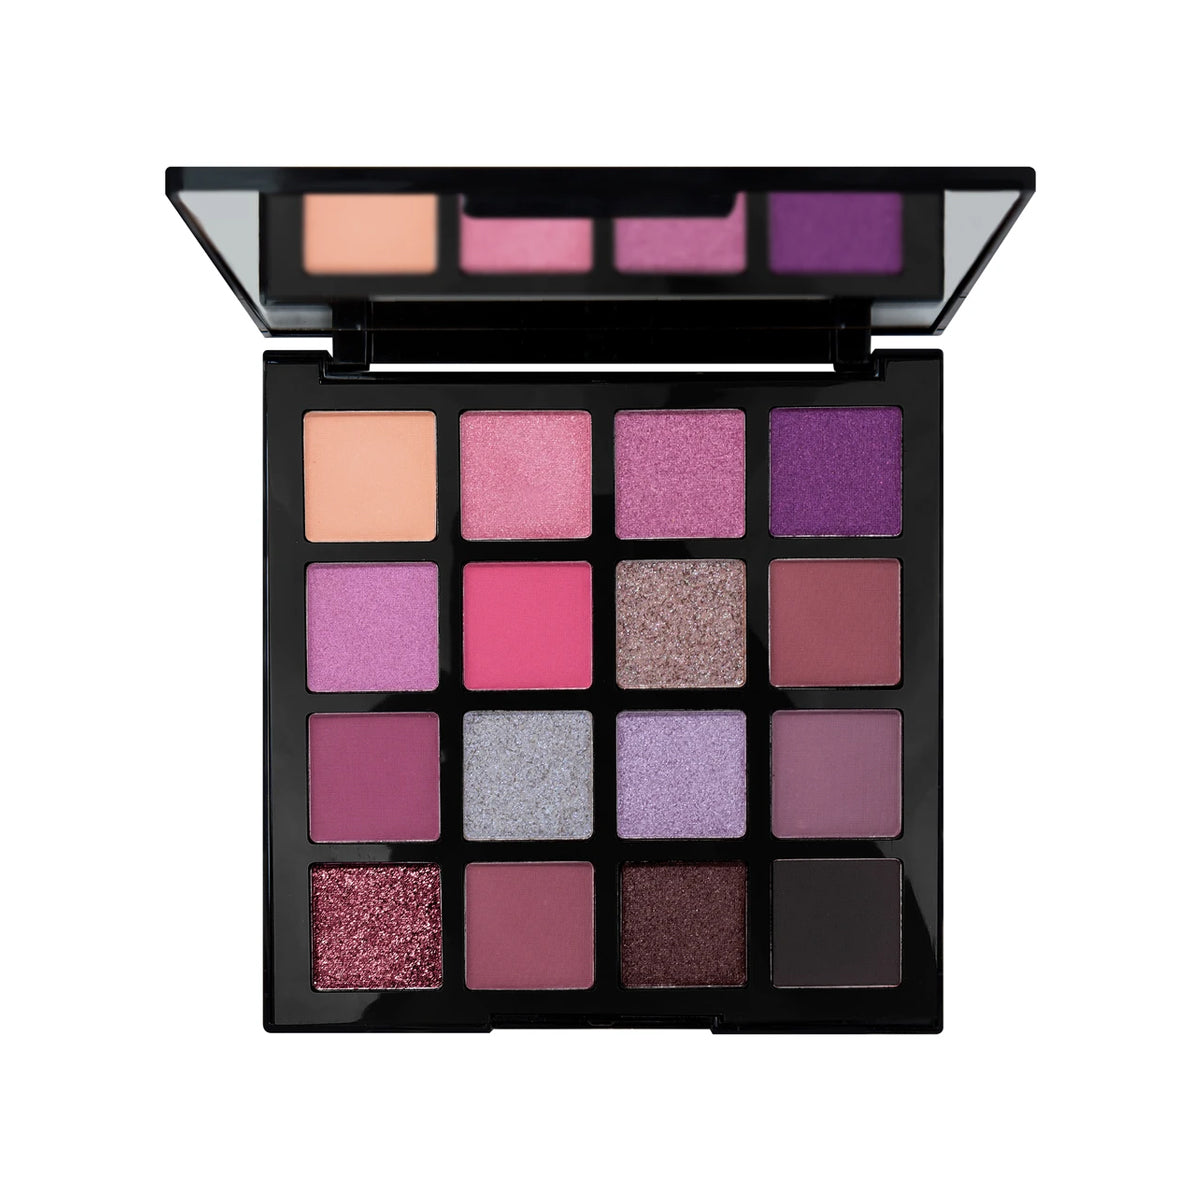 LA Girl Break Free Eyeshadow Palette